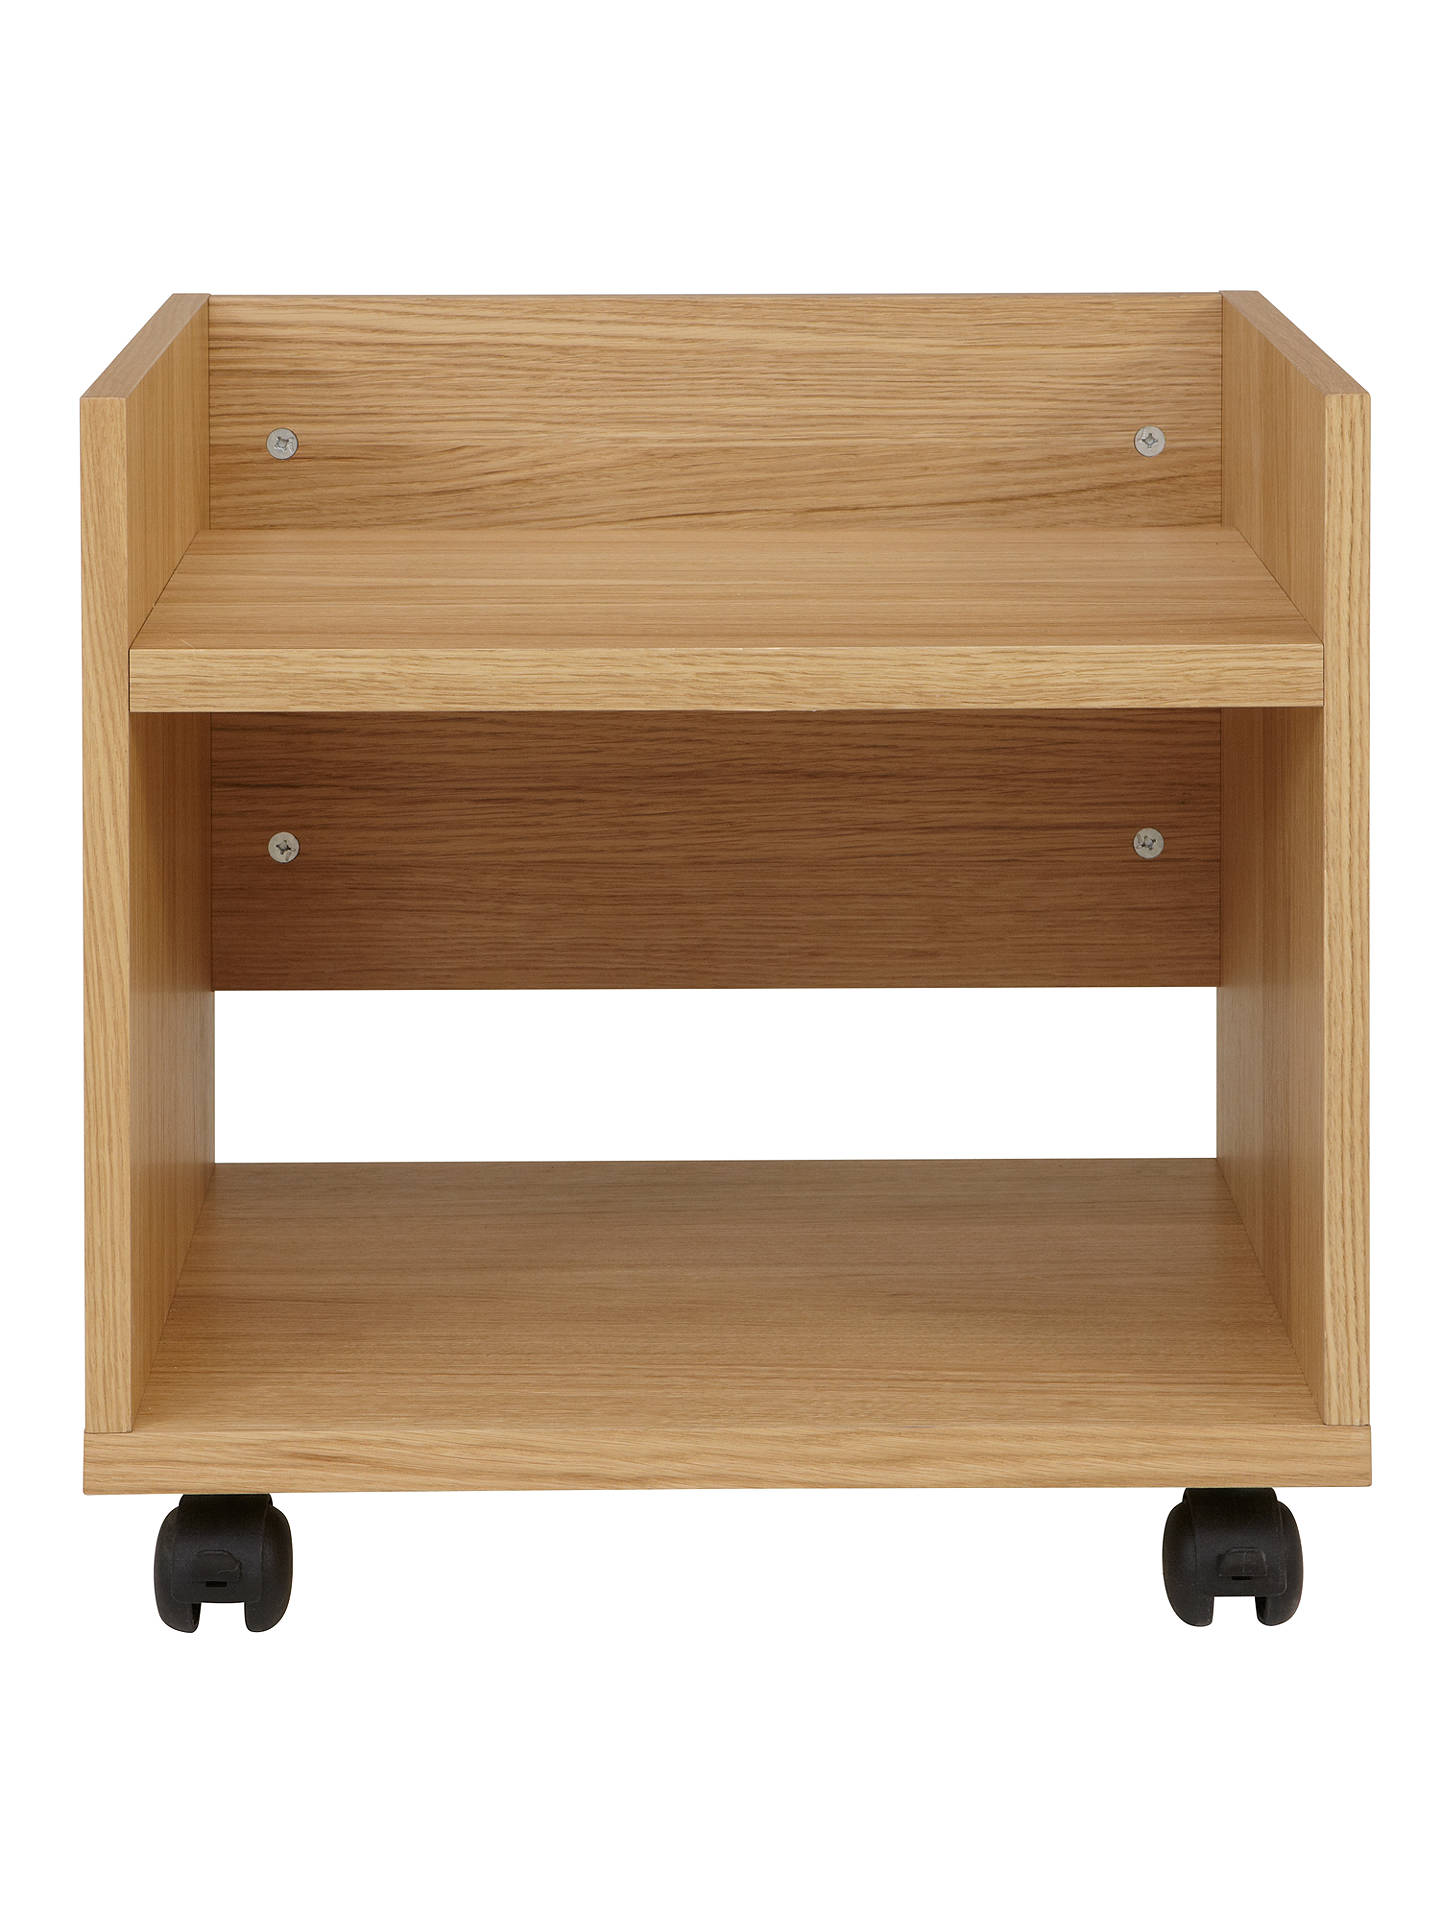 BuyJohn Lewis & Partners Abacus Printer Trolley, FSC-Certified, Oak Online at johnlewis.com